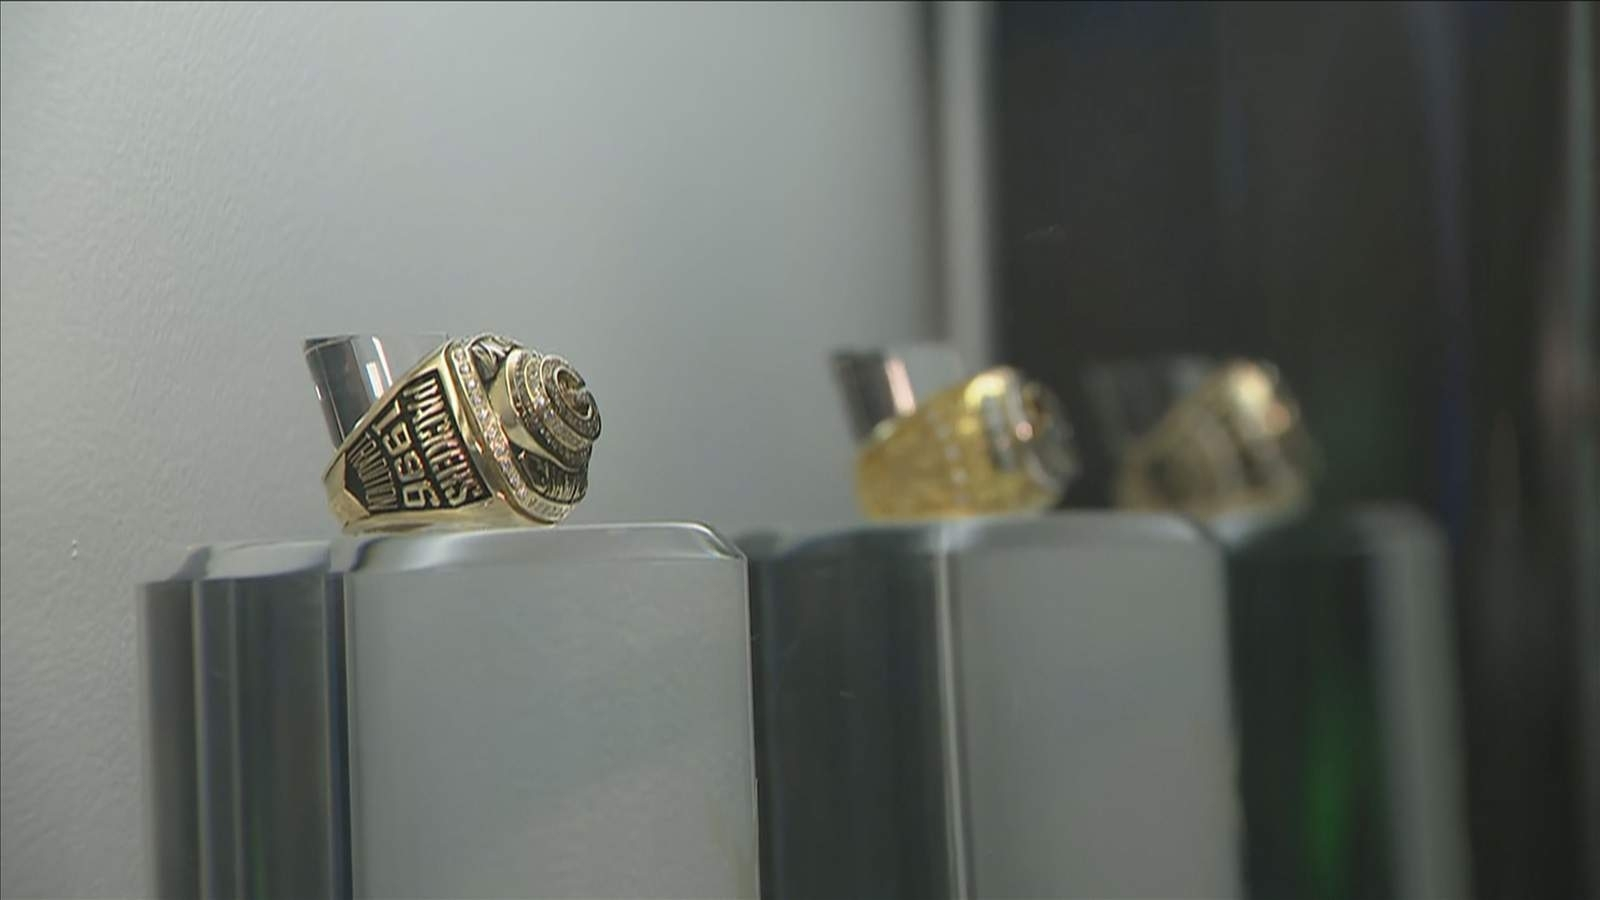 Are You Experienced? Super Bowl Trophy, Rings On Display In intended for Miami Hurricanes With Super Bowl Rings